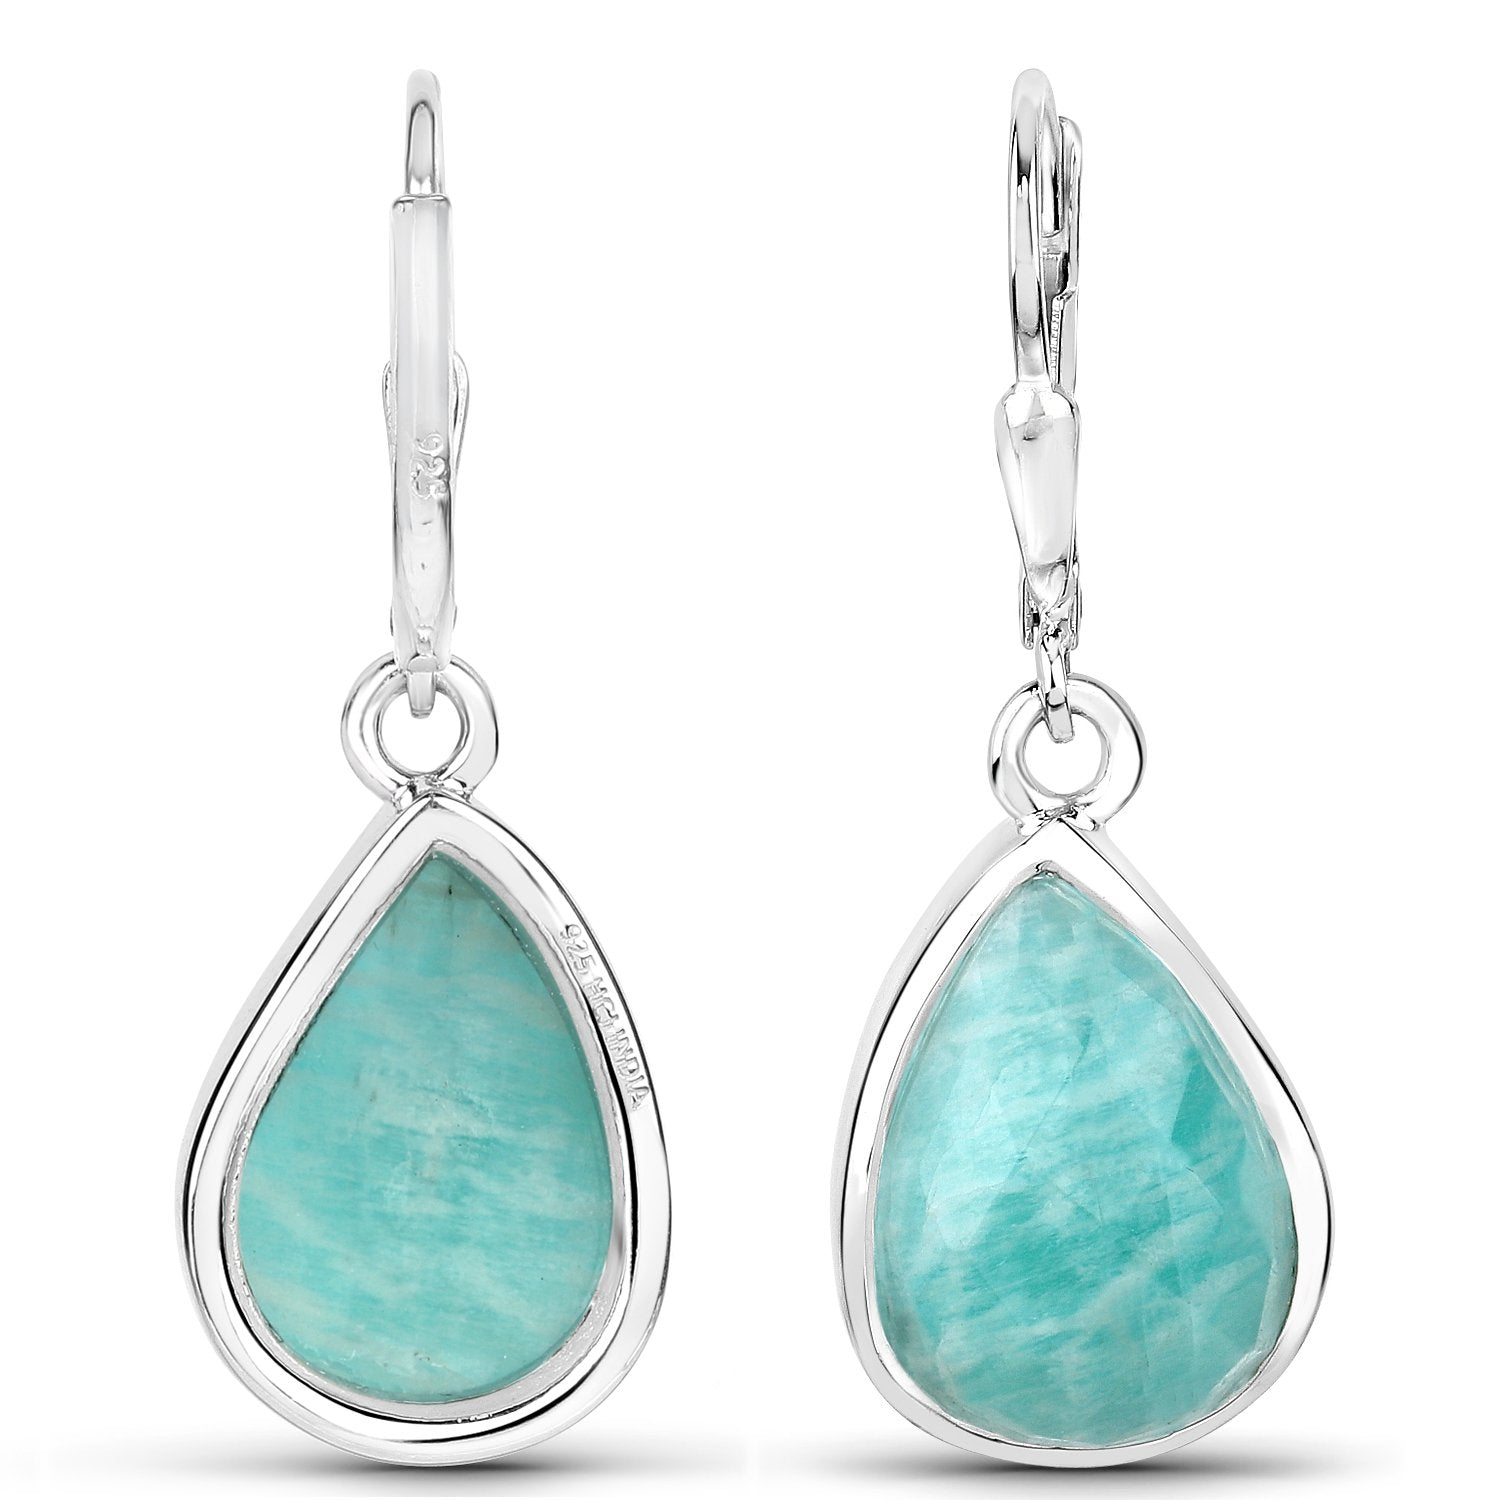 LoveHuang 9.04 Carats Genuine Amazonite Dangle Earrings Solid .925 Sterling Silver With Rhodium Plating